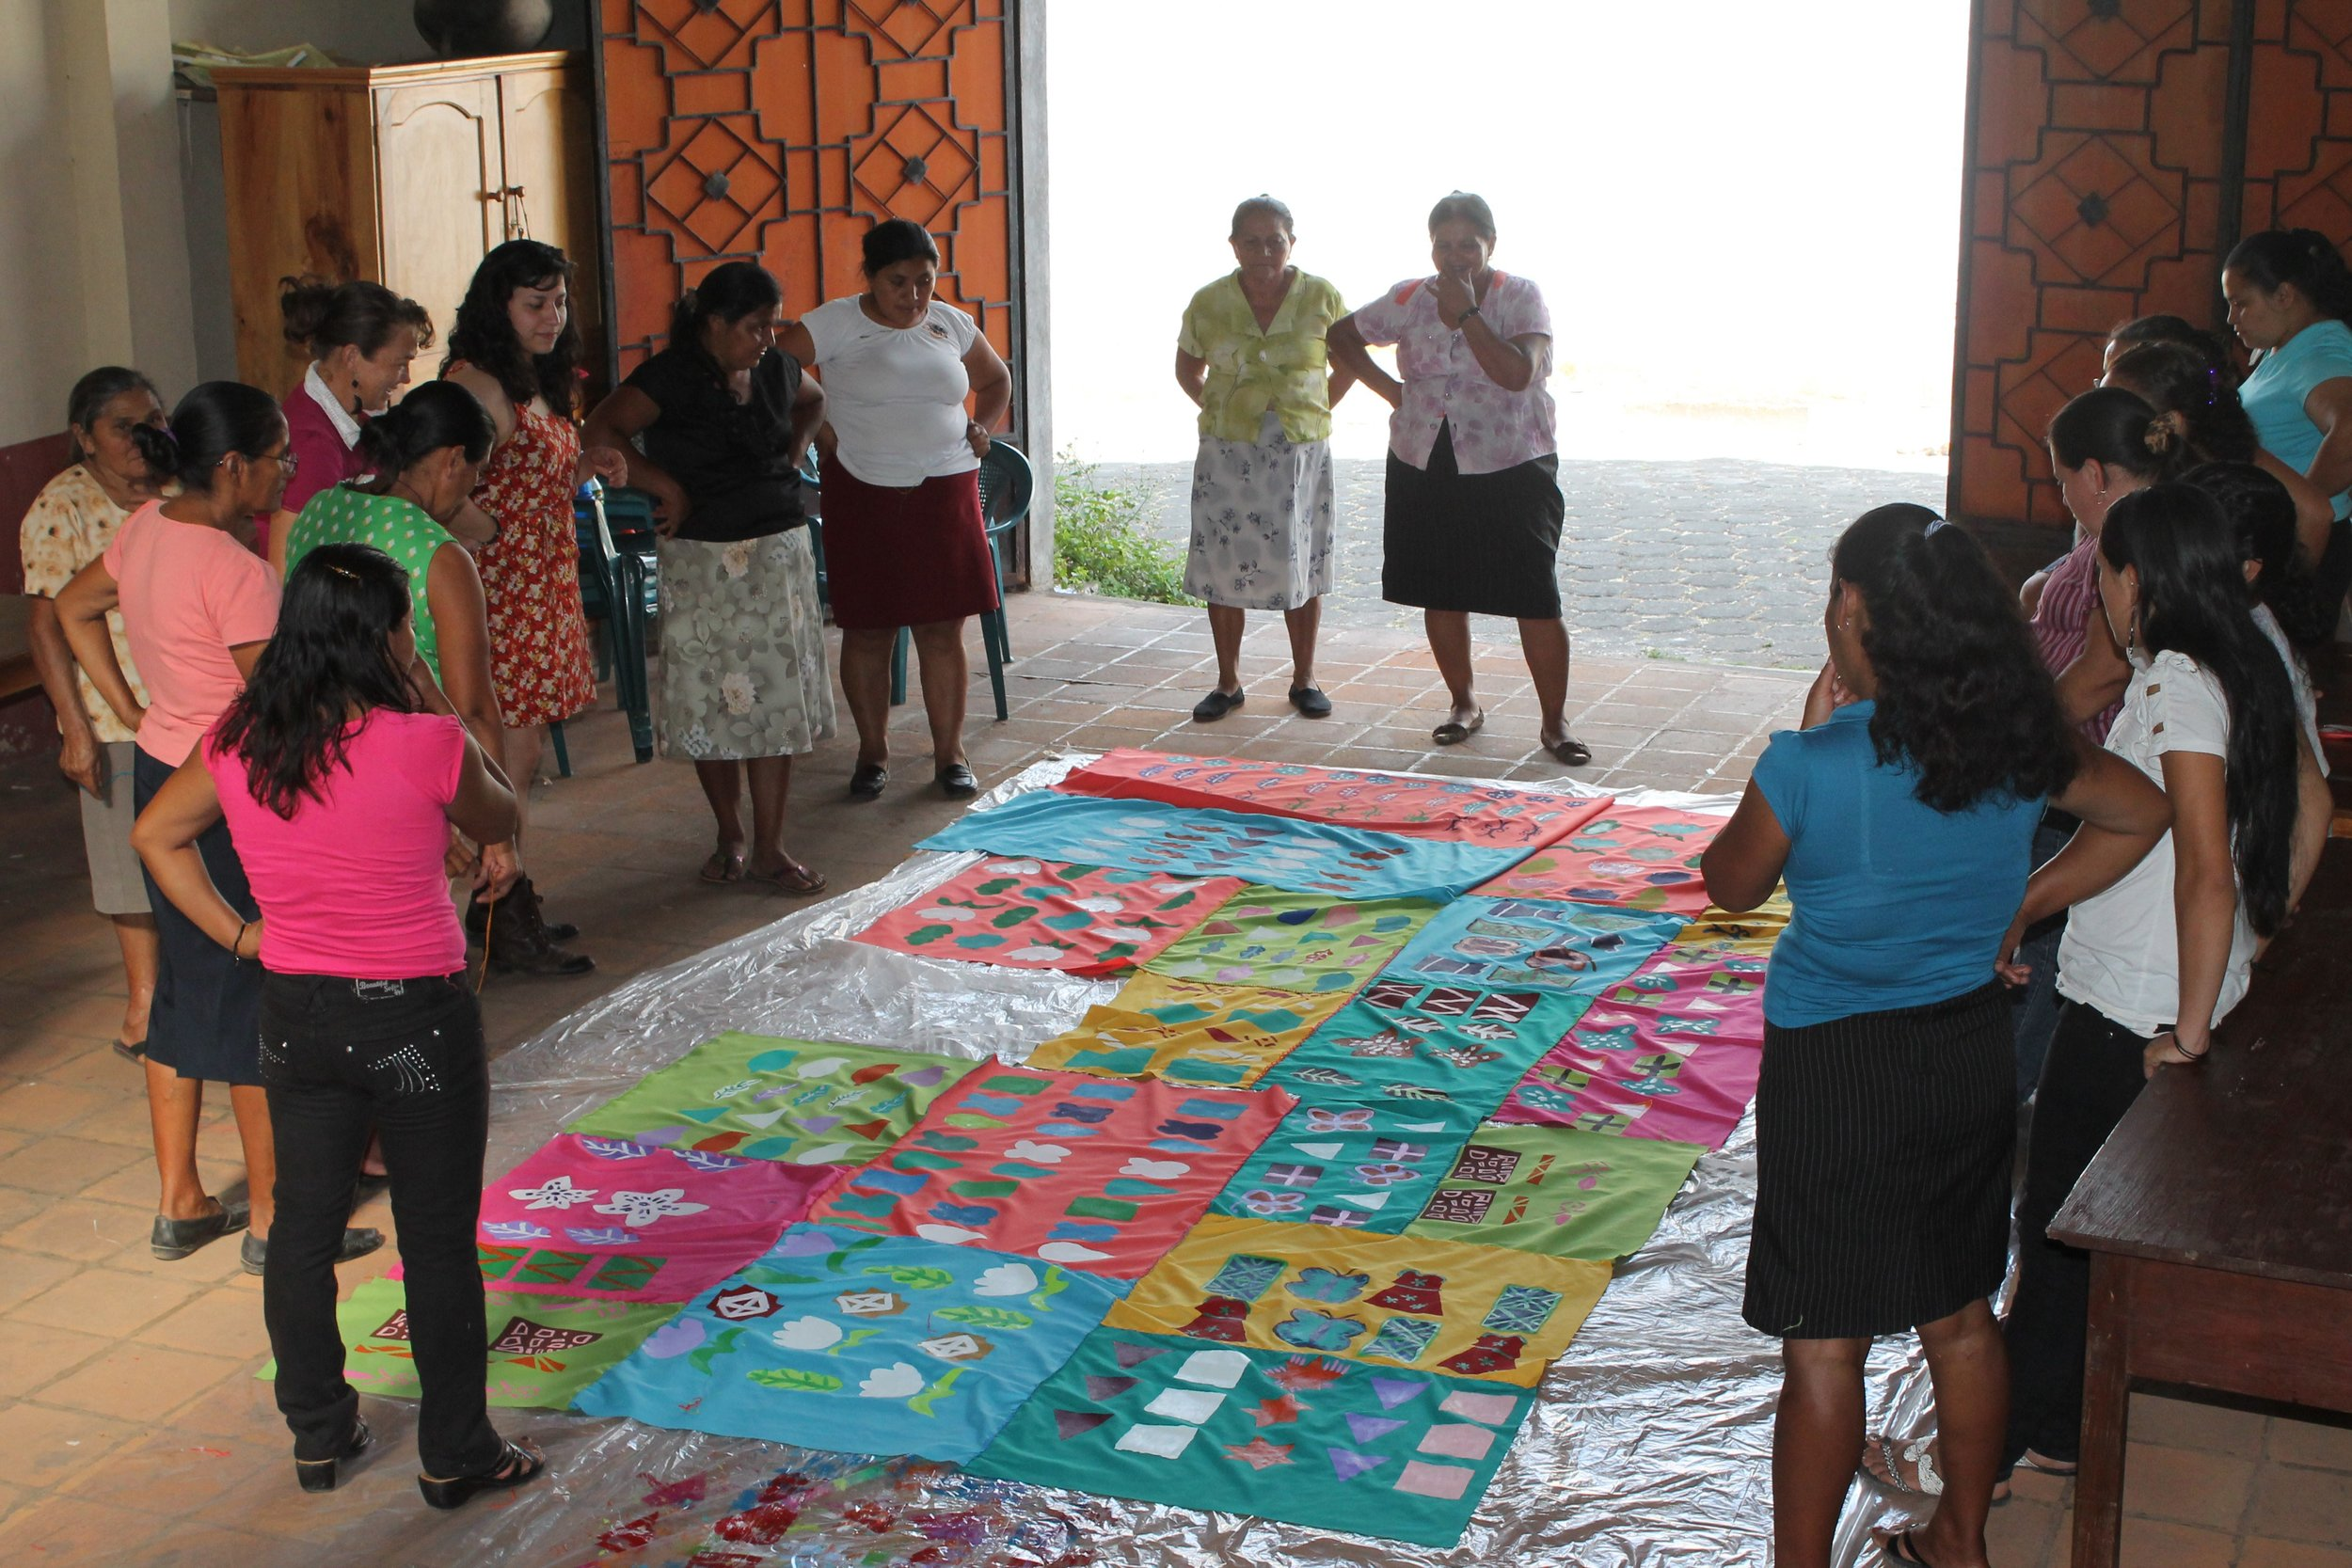 """""""Morazán Hilvanando Colores,"""" 2013. Fiber collaboration at Walls of Hope in Perquín, El Salvador. Victoria Martinez is standing with a group of women around a large textile on the floor. The textile is composed of different rectangular fabric pieces of varying vibrant colors that have a range of geometric patterns painted onto them. The piece was collaboratively made by the artists and these women, who have experience with war in El Salvador, from being nurses at war to having relatives to past survivors. Image courtesy of the artist."""